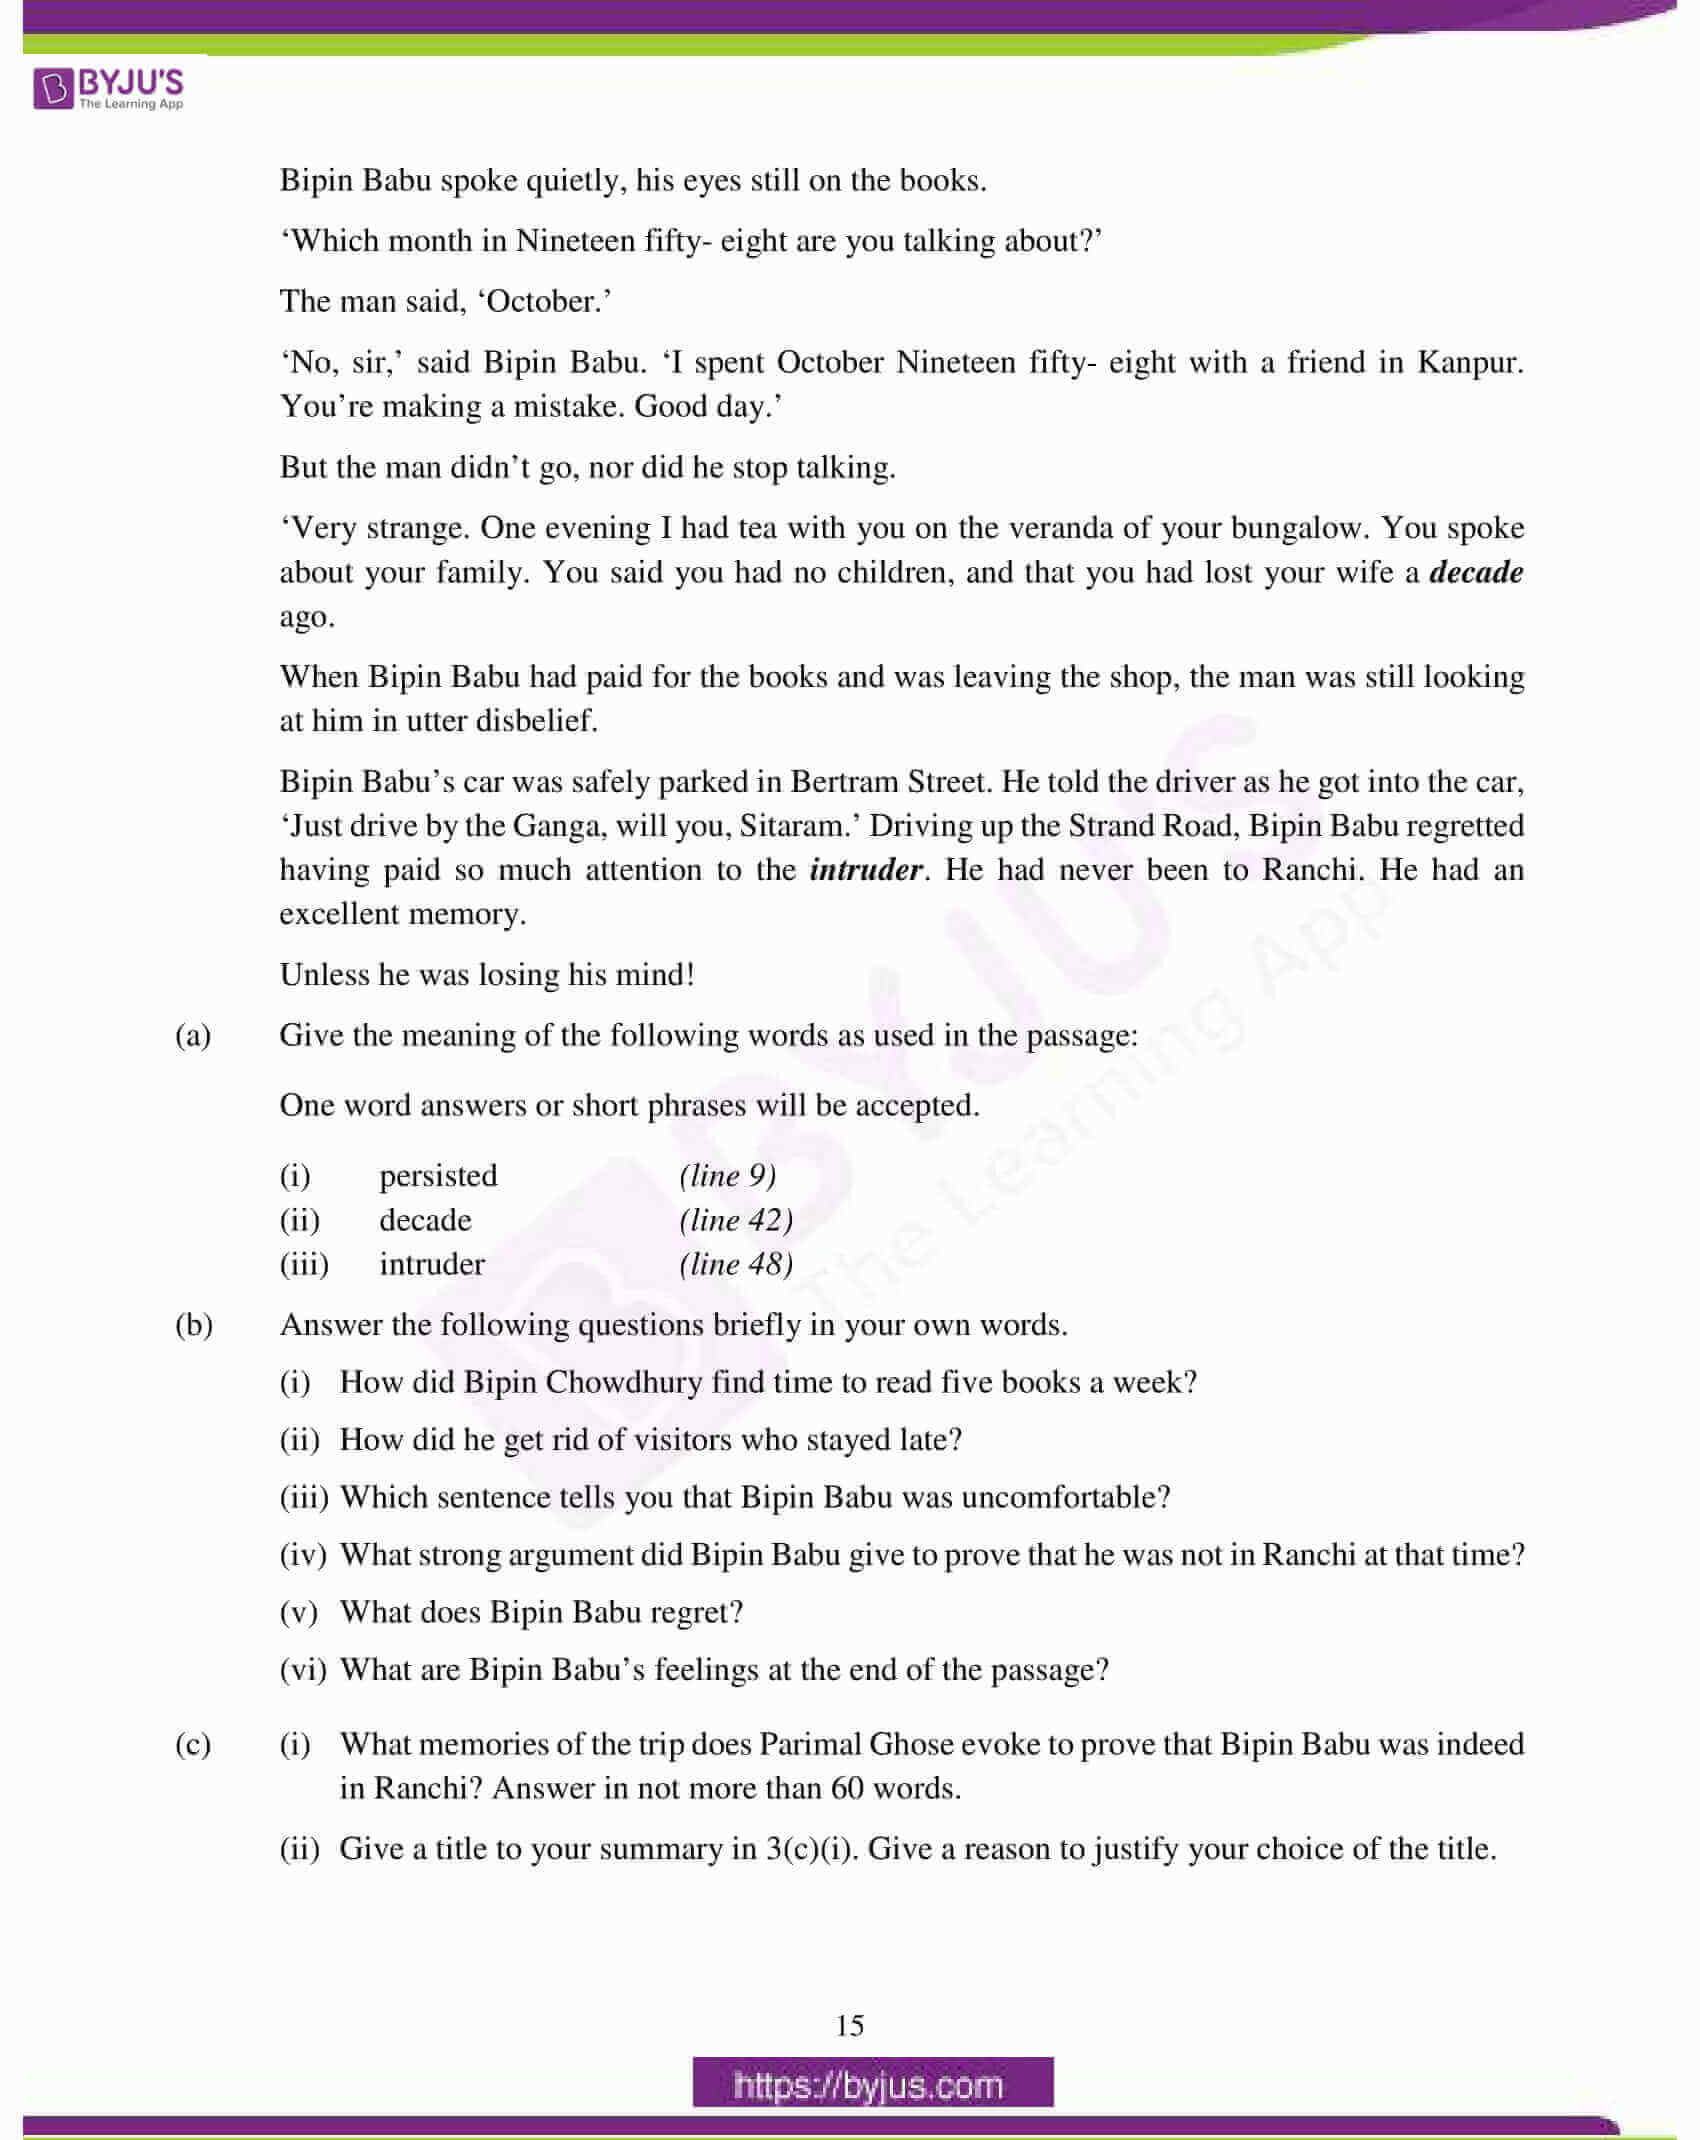 icse class 10 eng lan question paper solution 2017 06